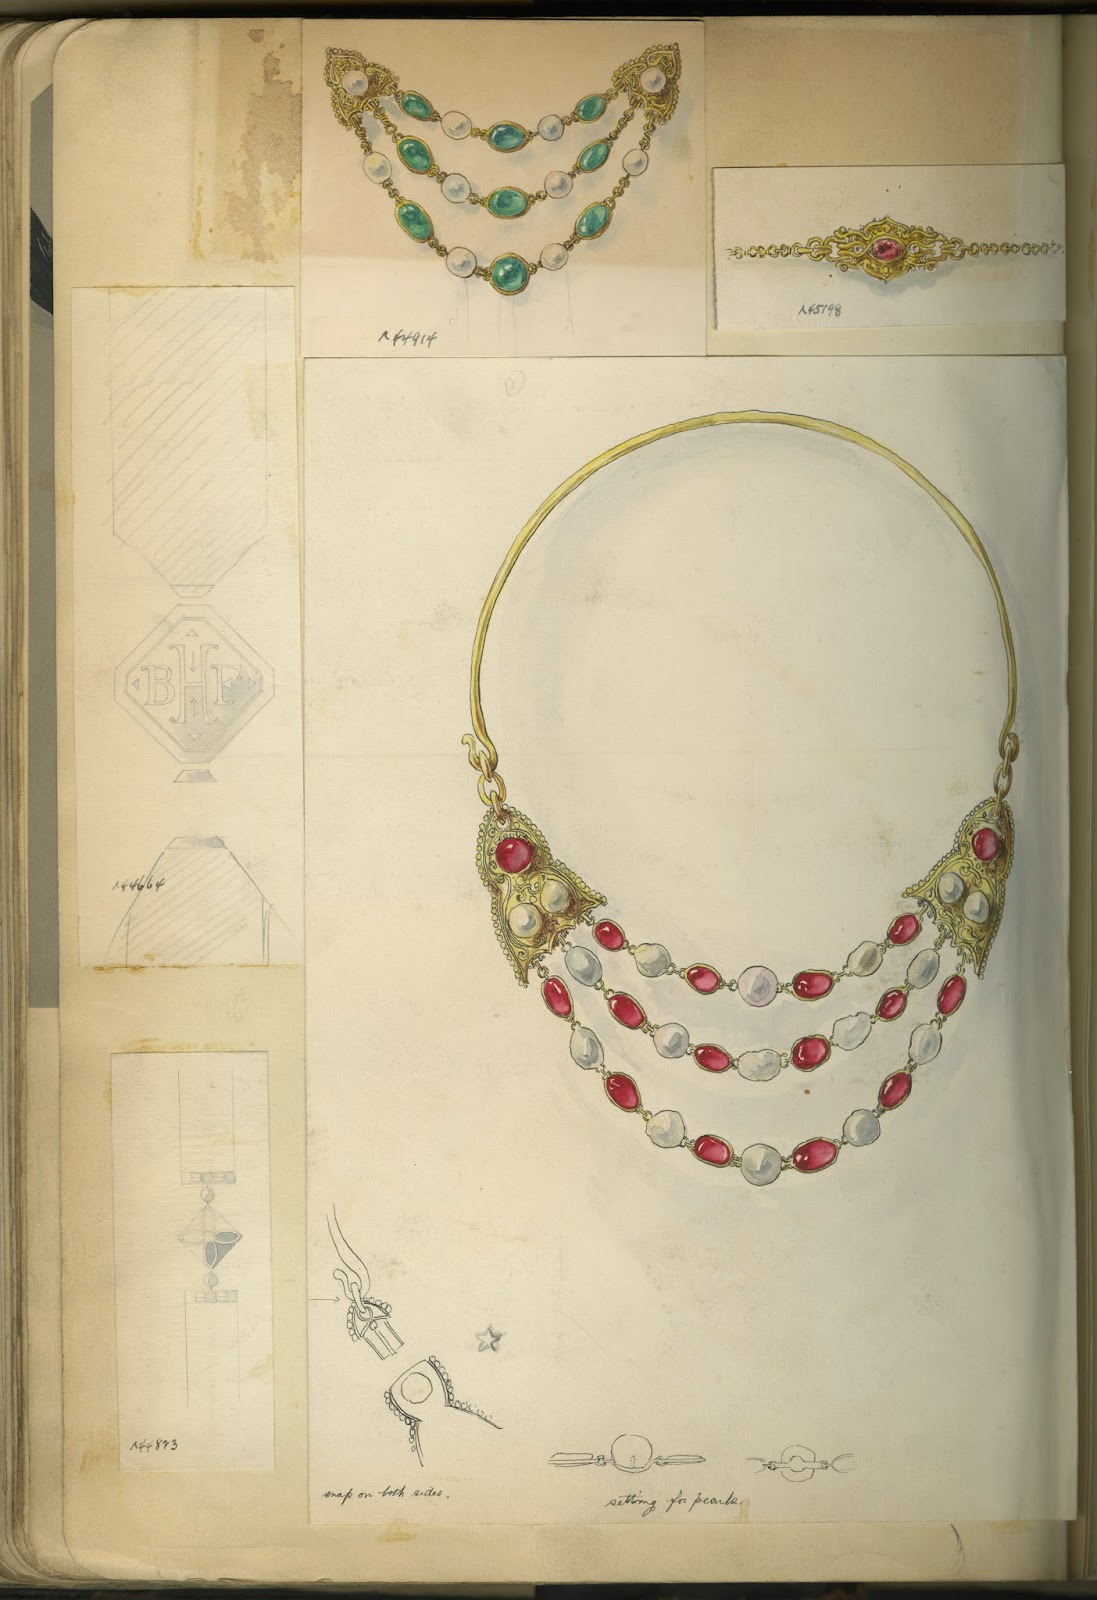 A page of drawn jewelry pieces, including a three-strand necklace.